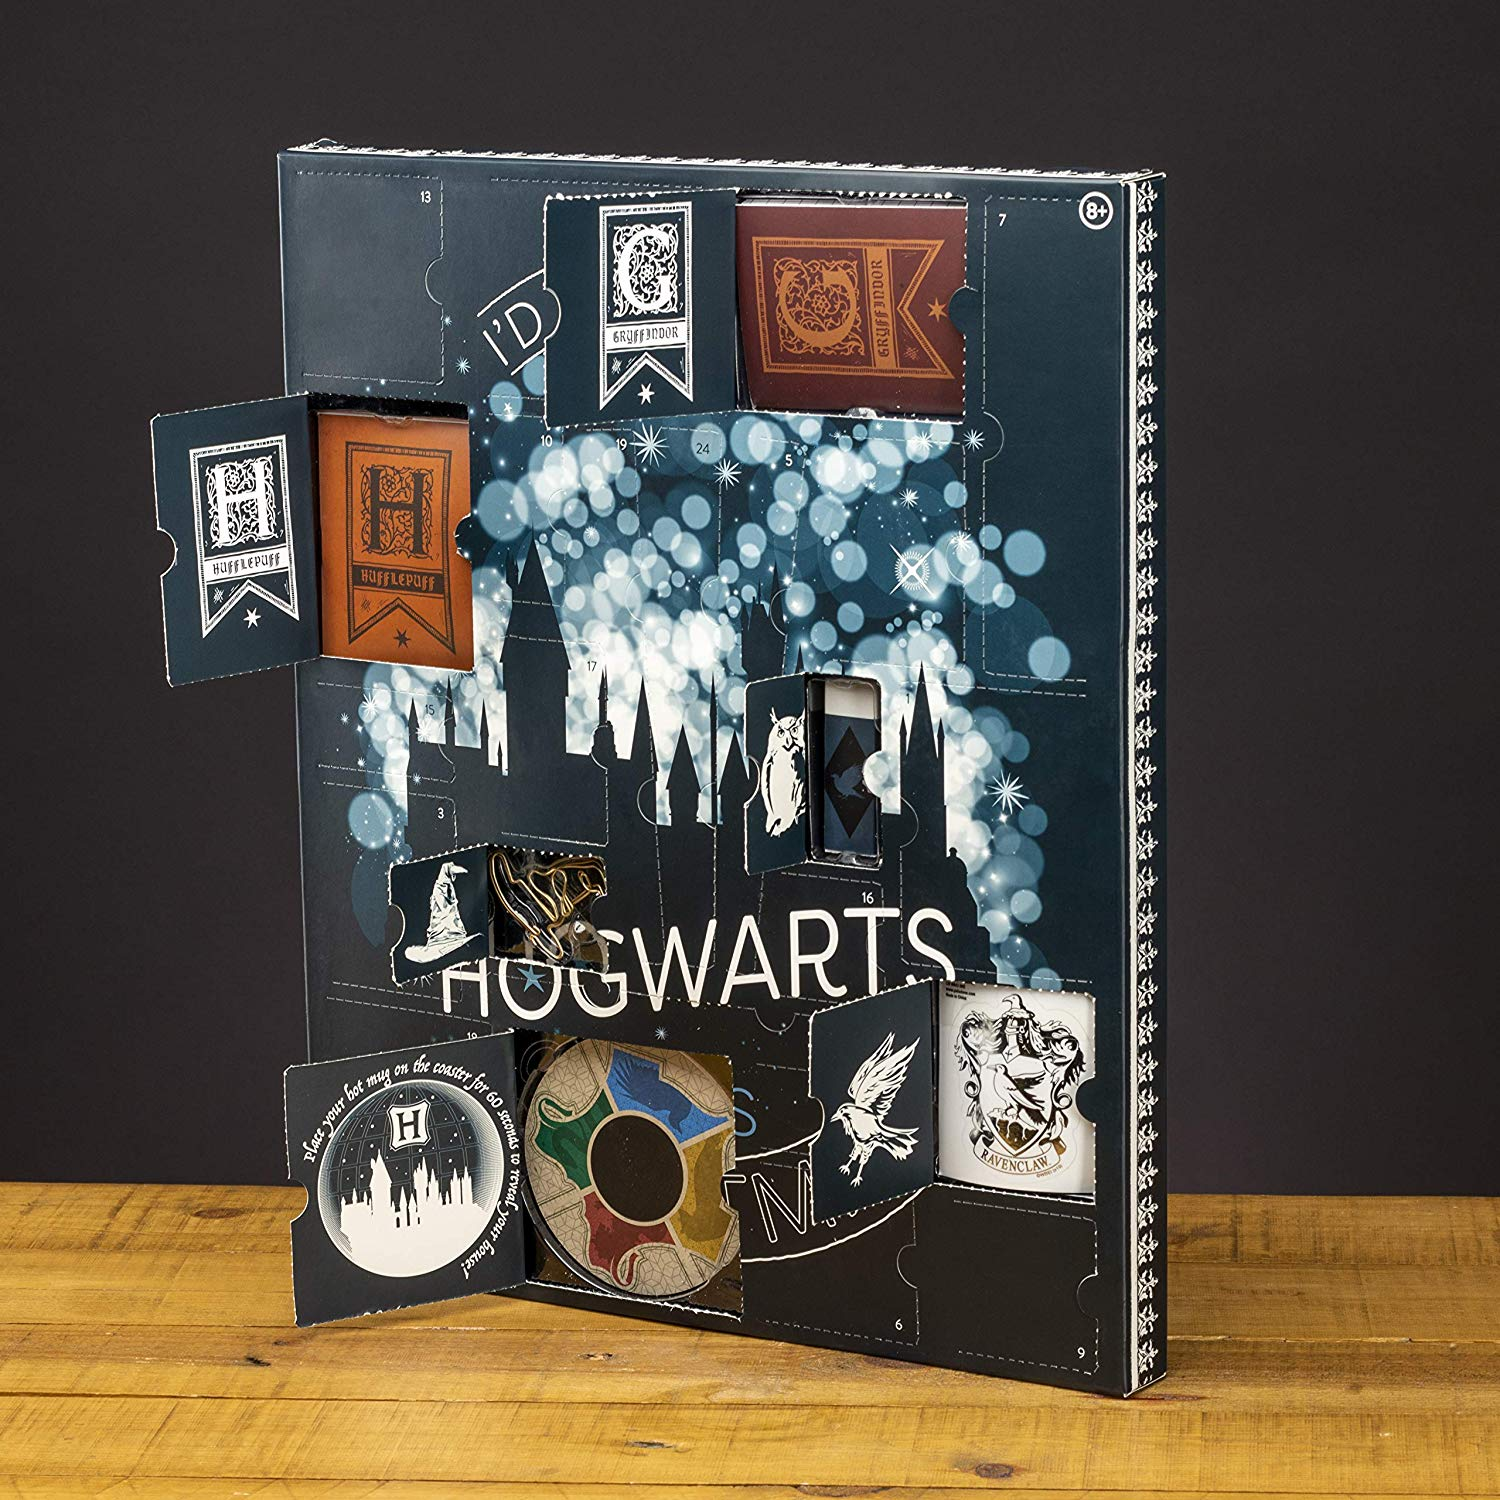 Harry Potter Hogwarts adventskalender 2019